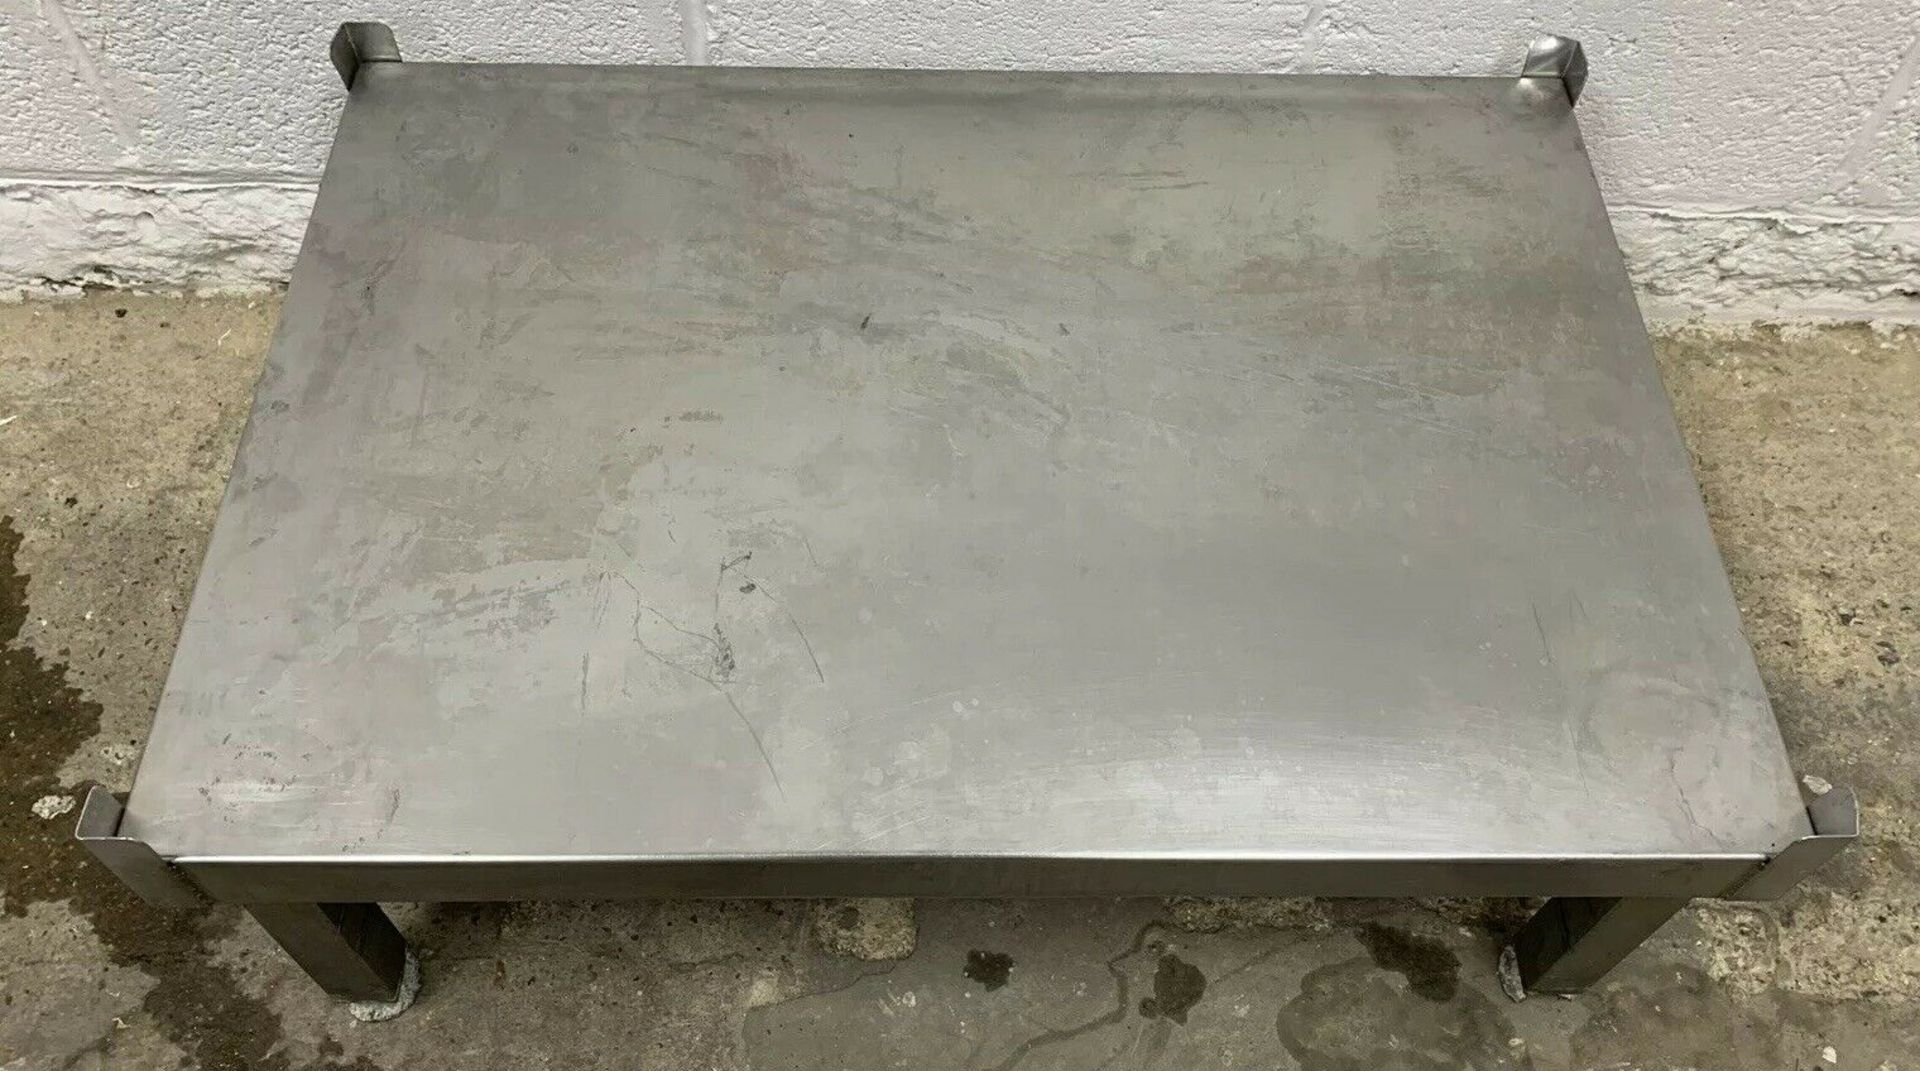 Lot 66 - Stainless Steel Oven Stand